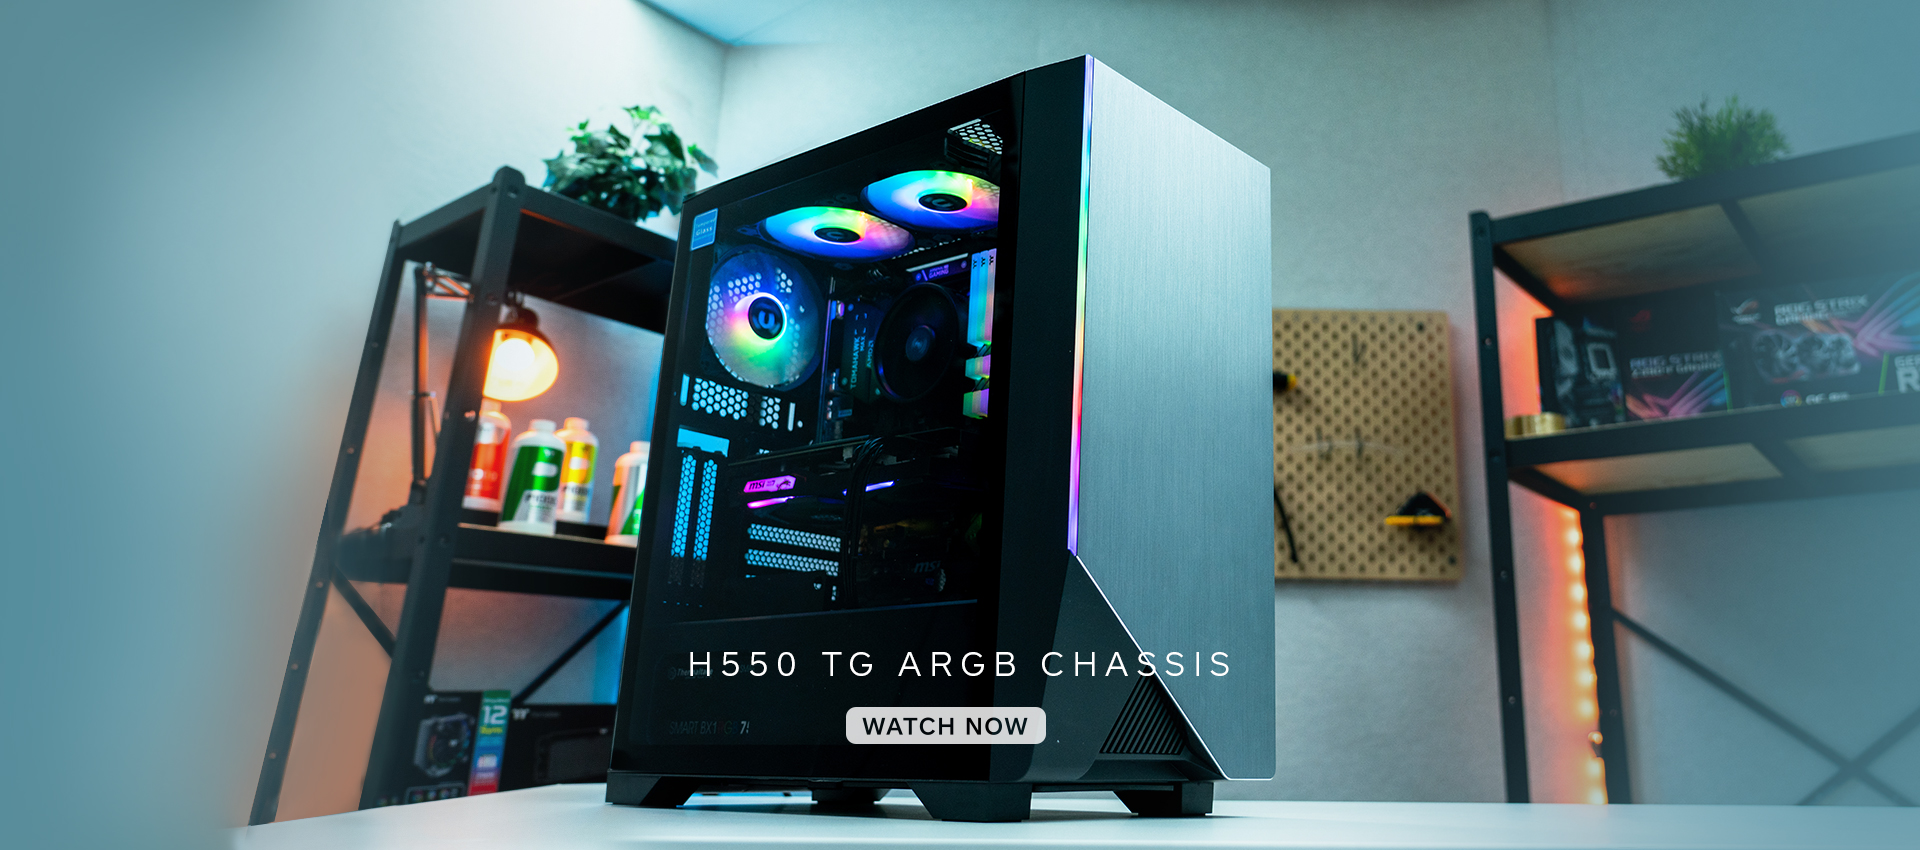 H550 Tempered Glass ARGB Mid-Tower Chassis